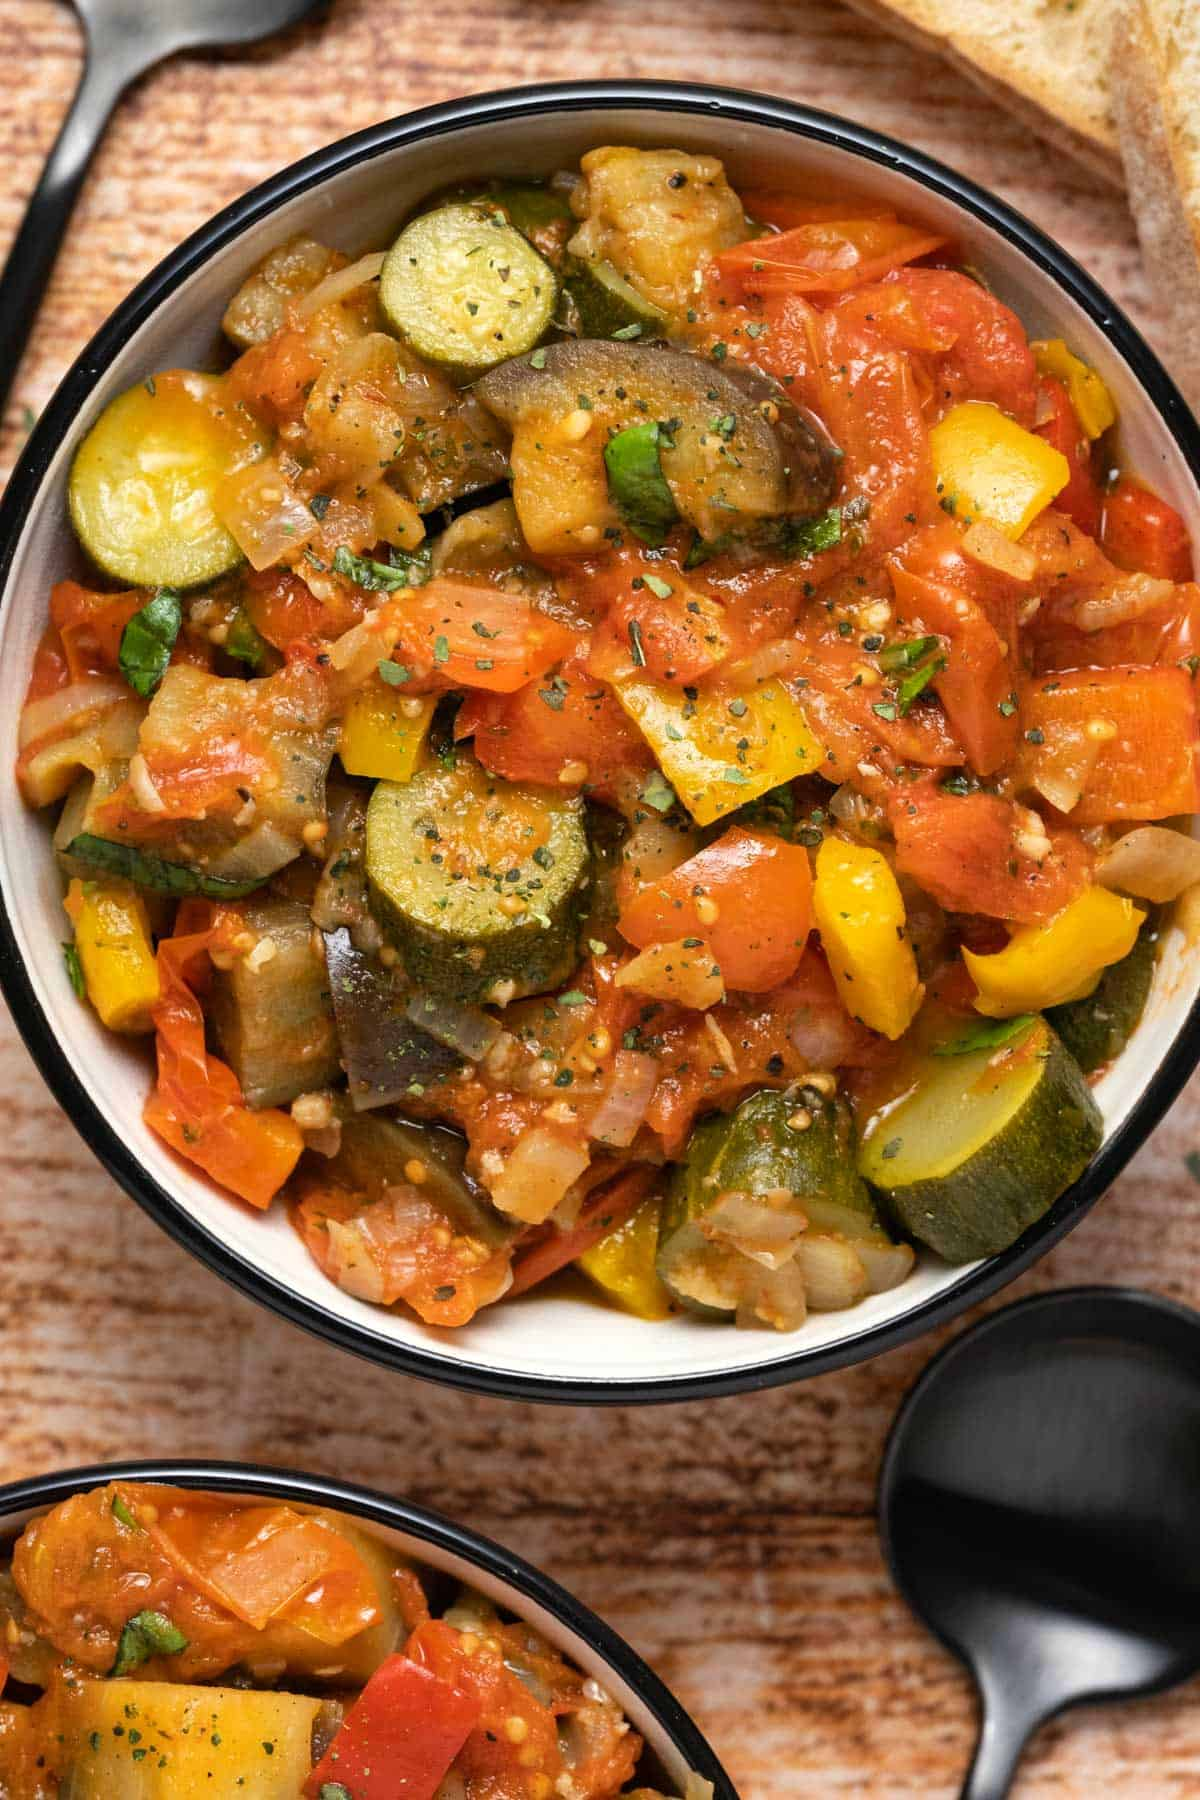 Ratatouille topped with black pepper and dried oregano in a ceramic bowl.